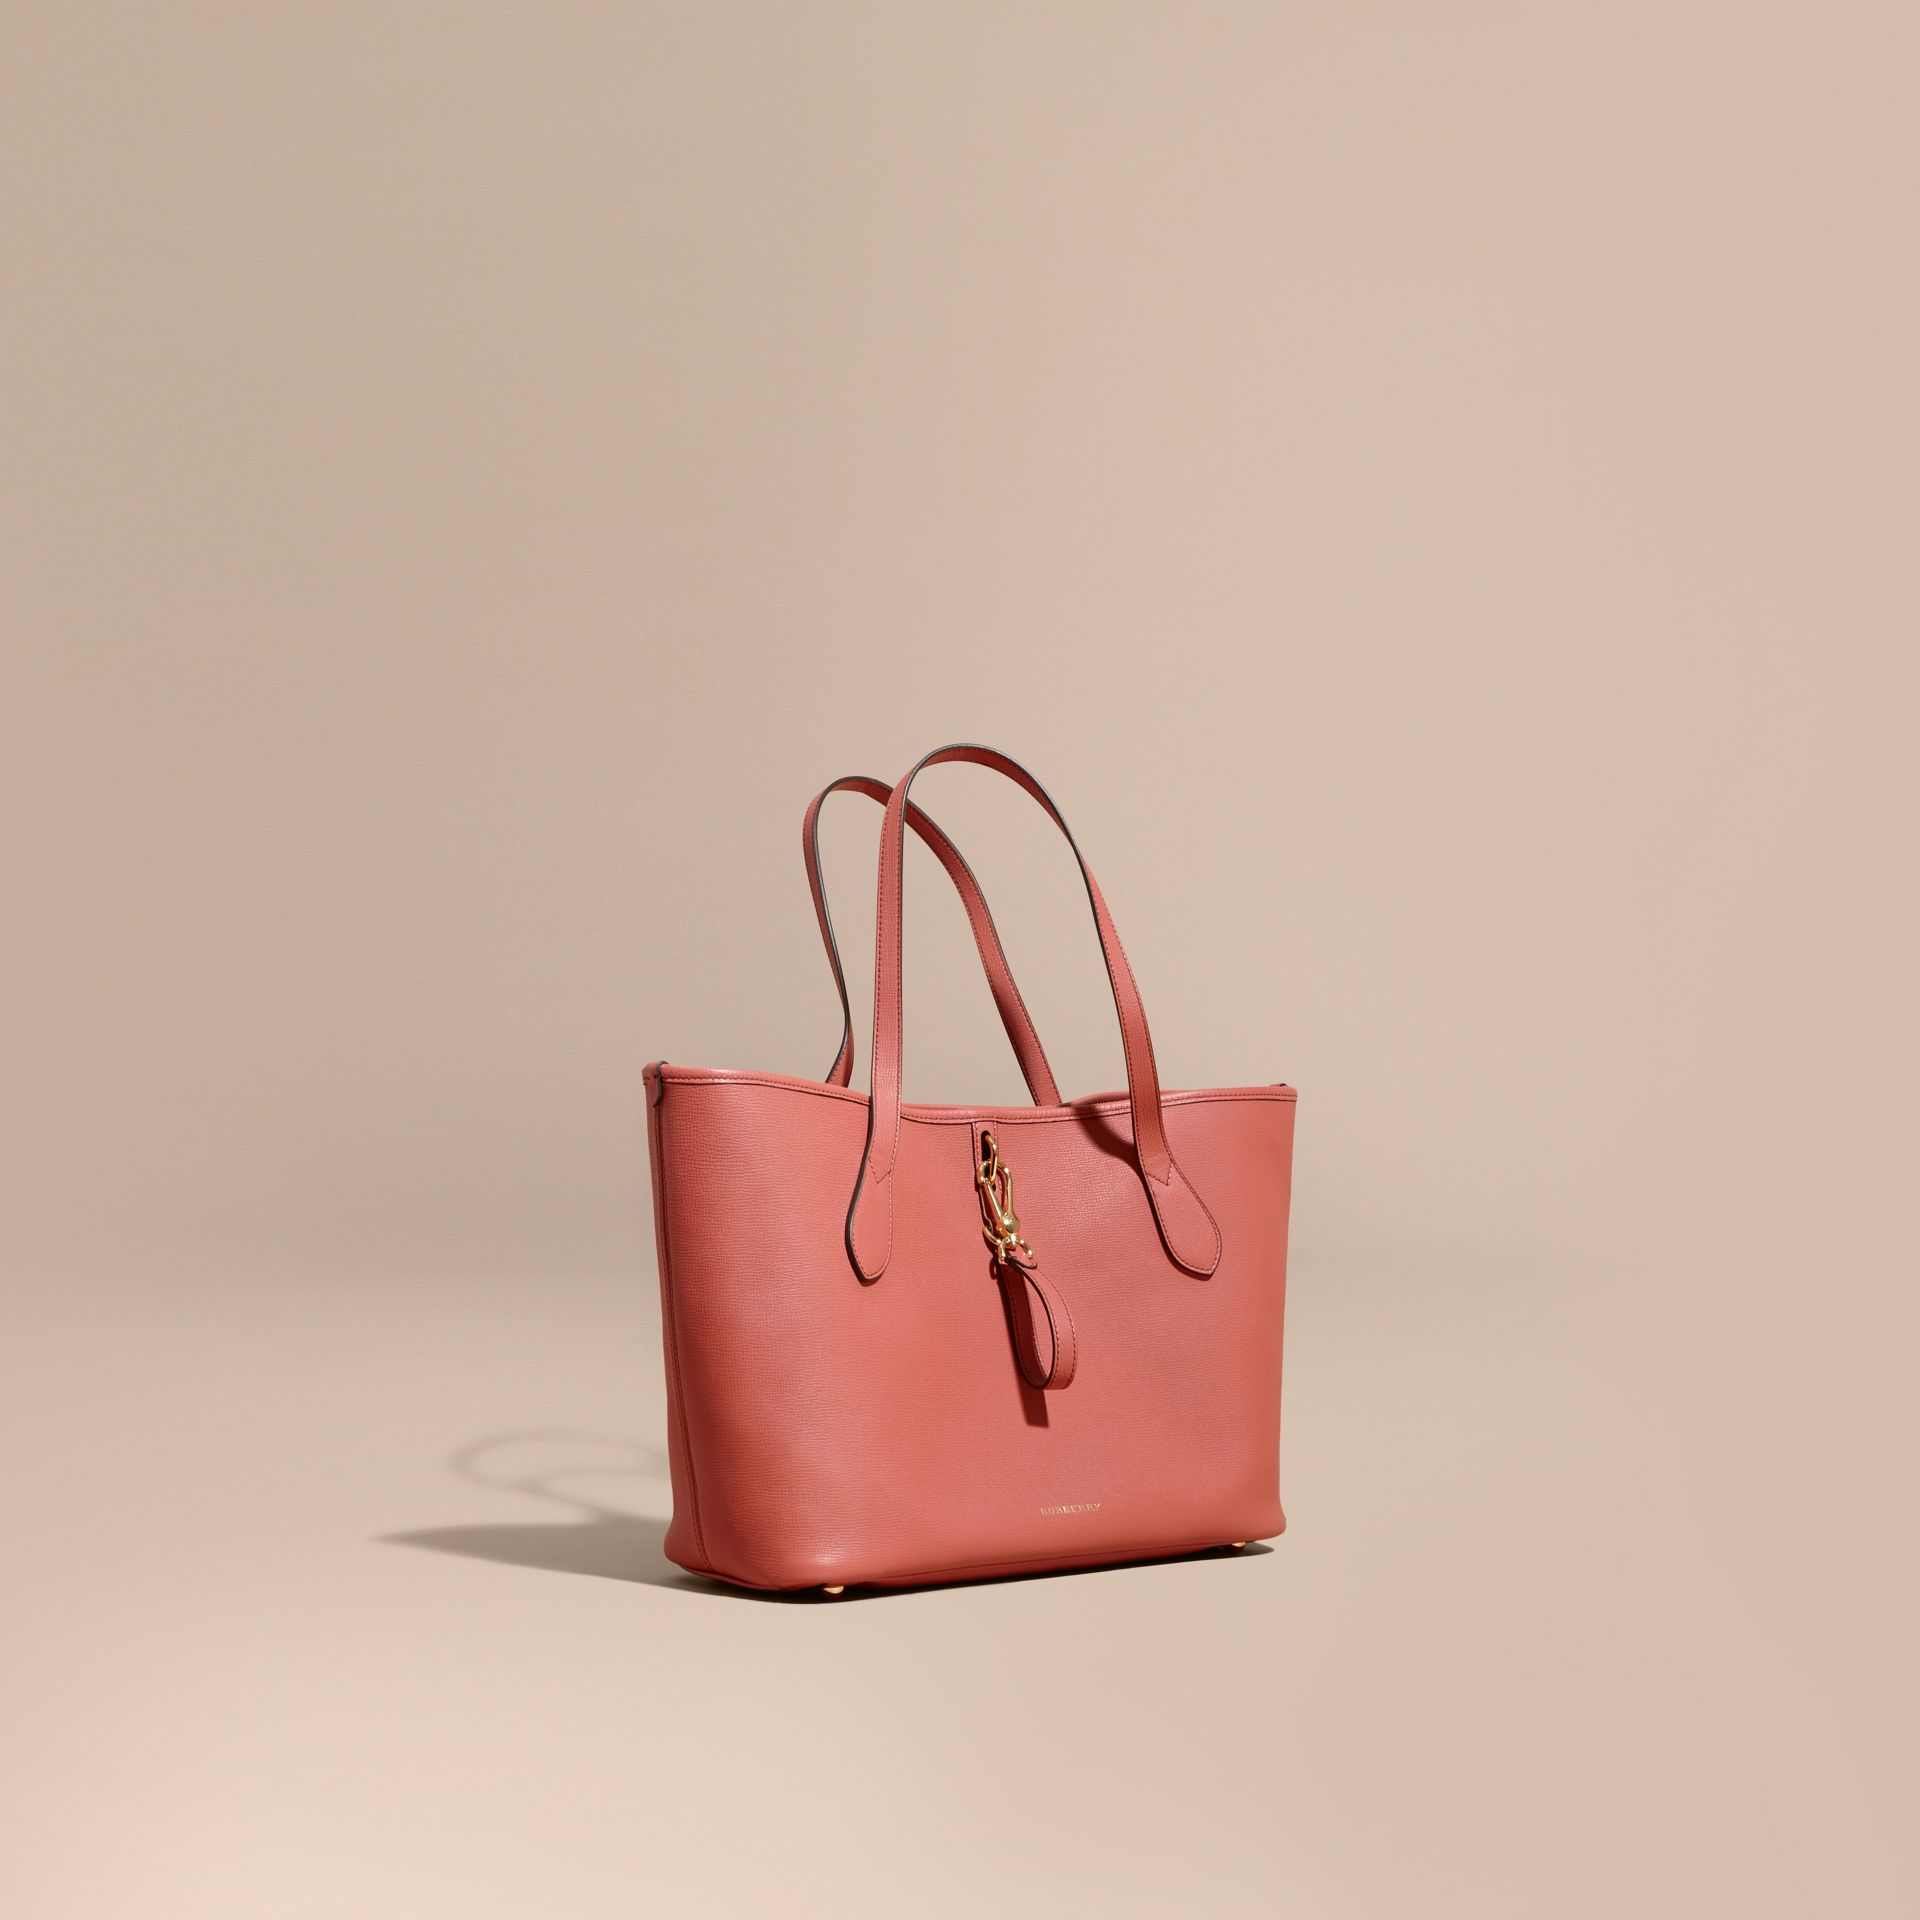 Medium Grainy Leather Tote Bag in Cinnamon Red - gallery image 1